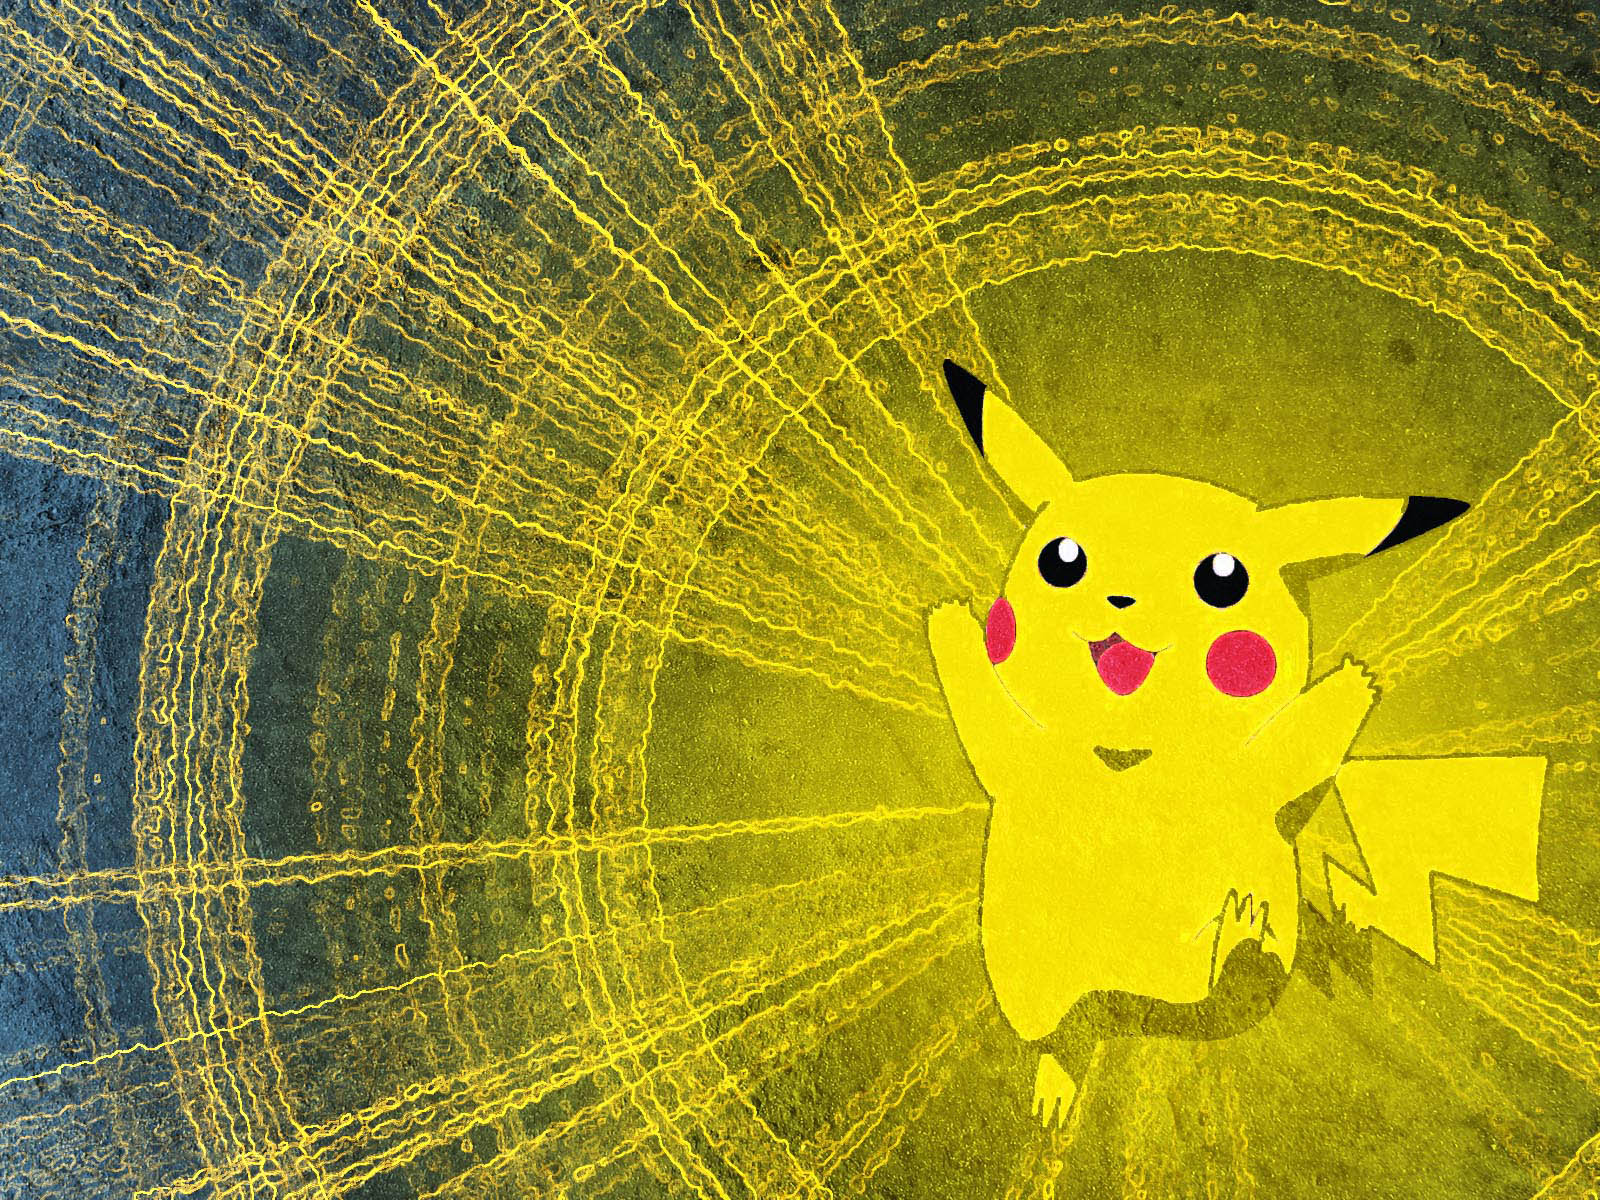 the Pikachu Pokemon Wallpapers Pikachu Pokemon Desktop Wallpapers 1600x1200